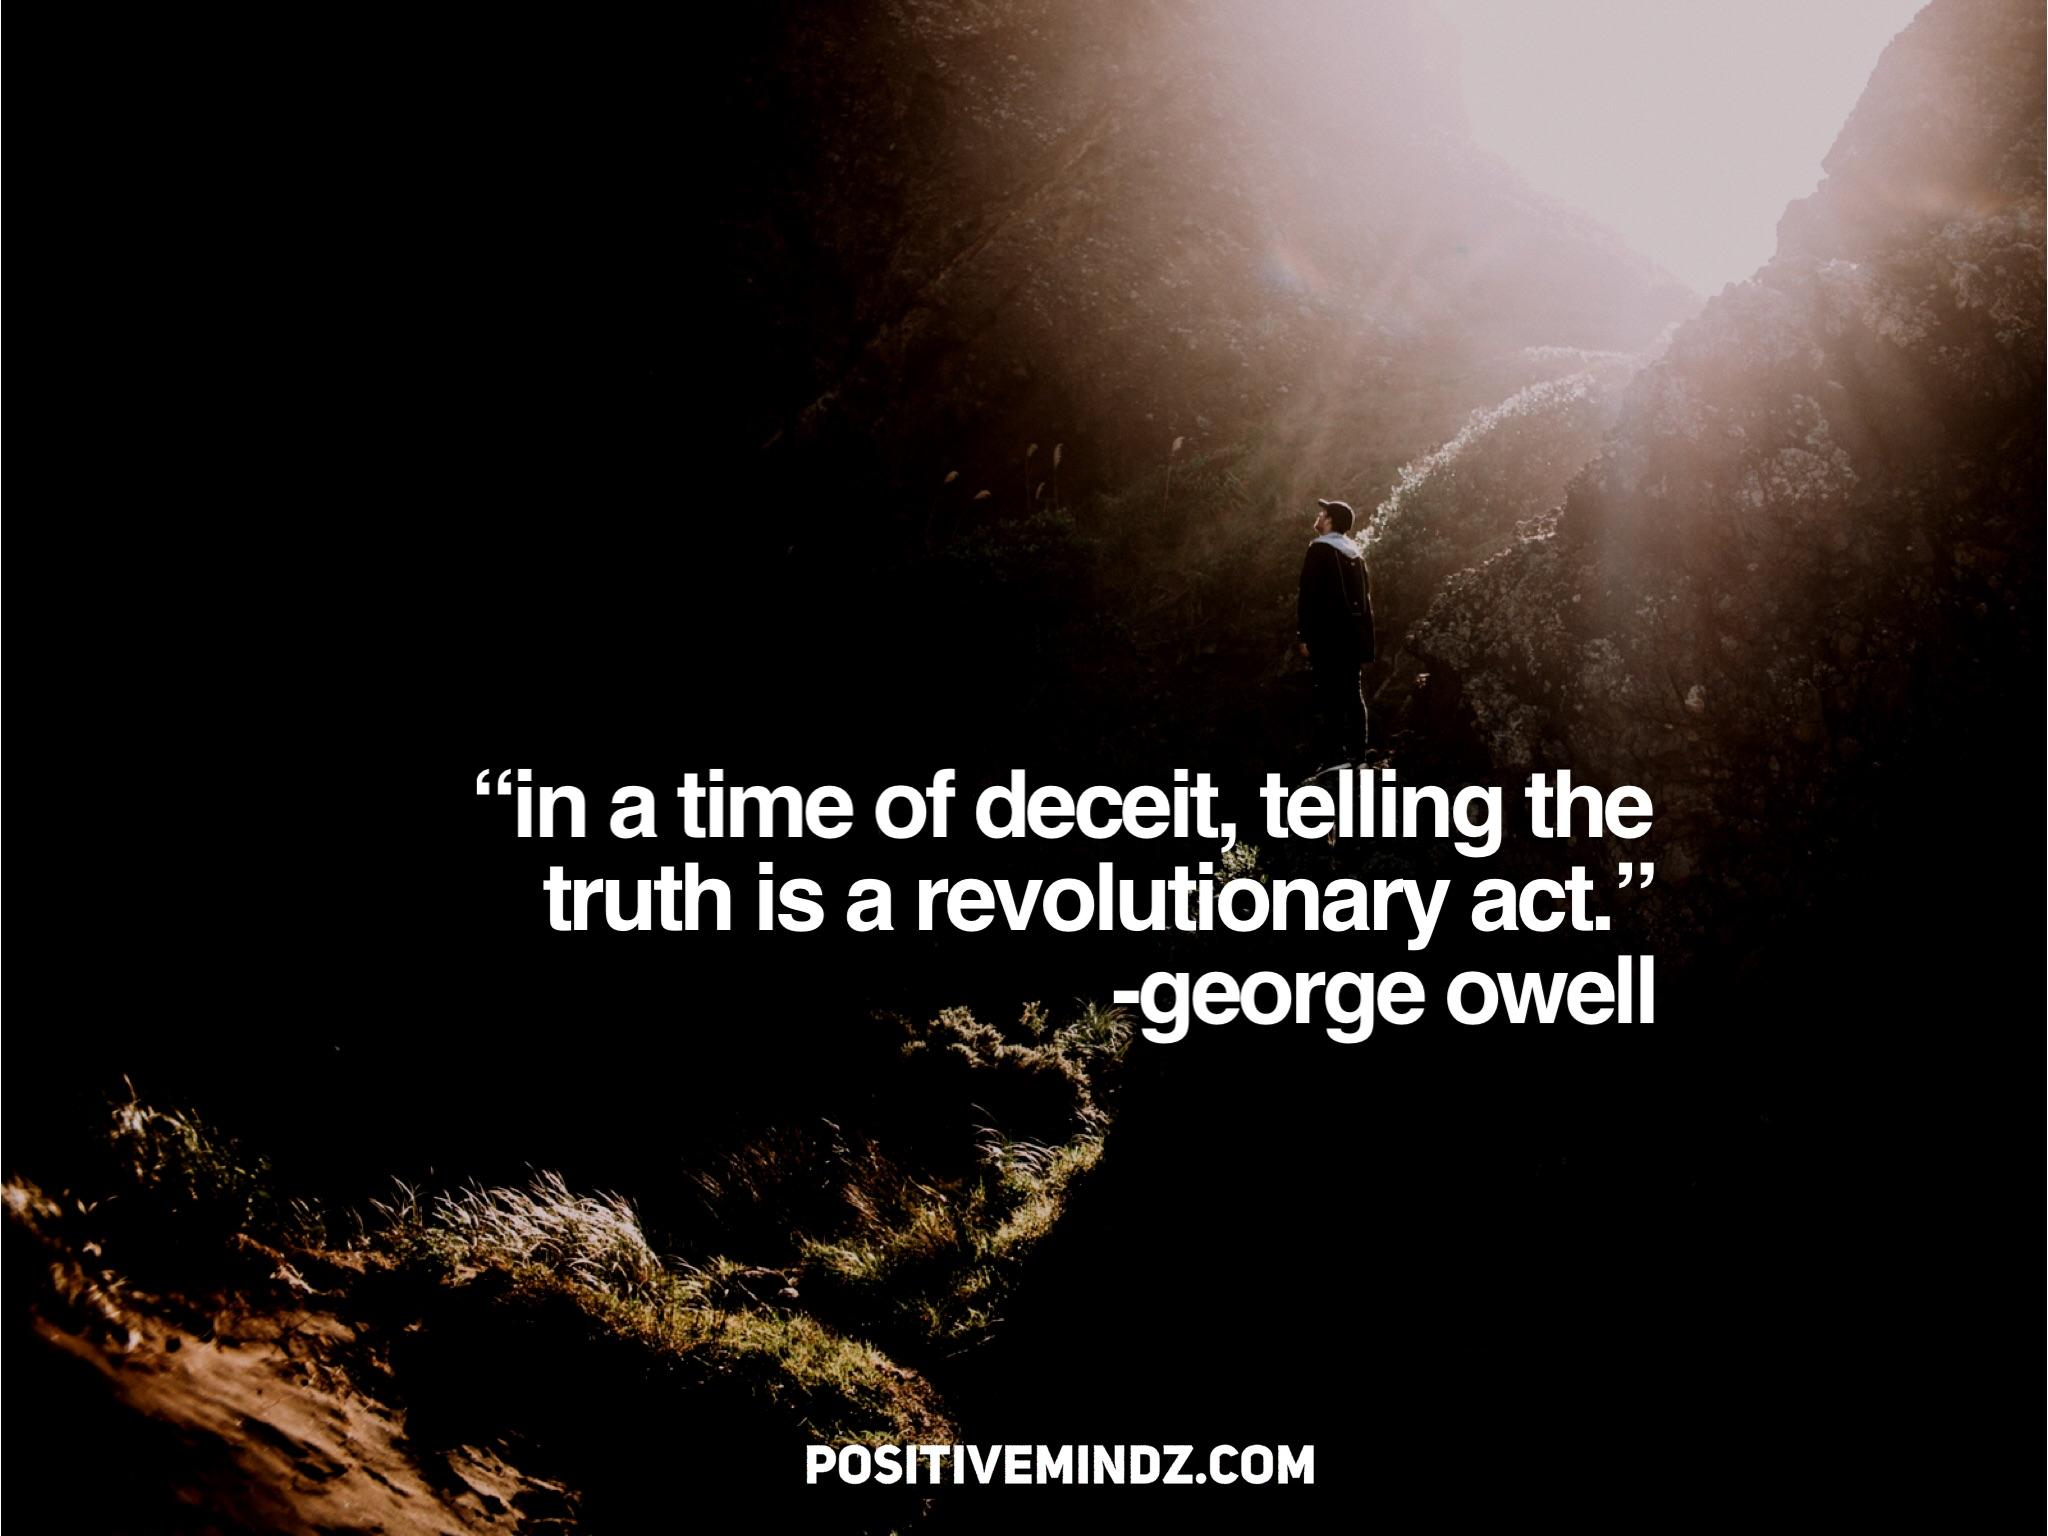 """in a time of deceitzwtell'ing the truth is a revolutionary ac A; triggeorge owell .'h'. 't '"